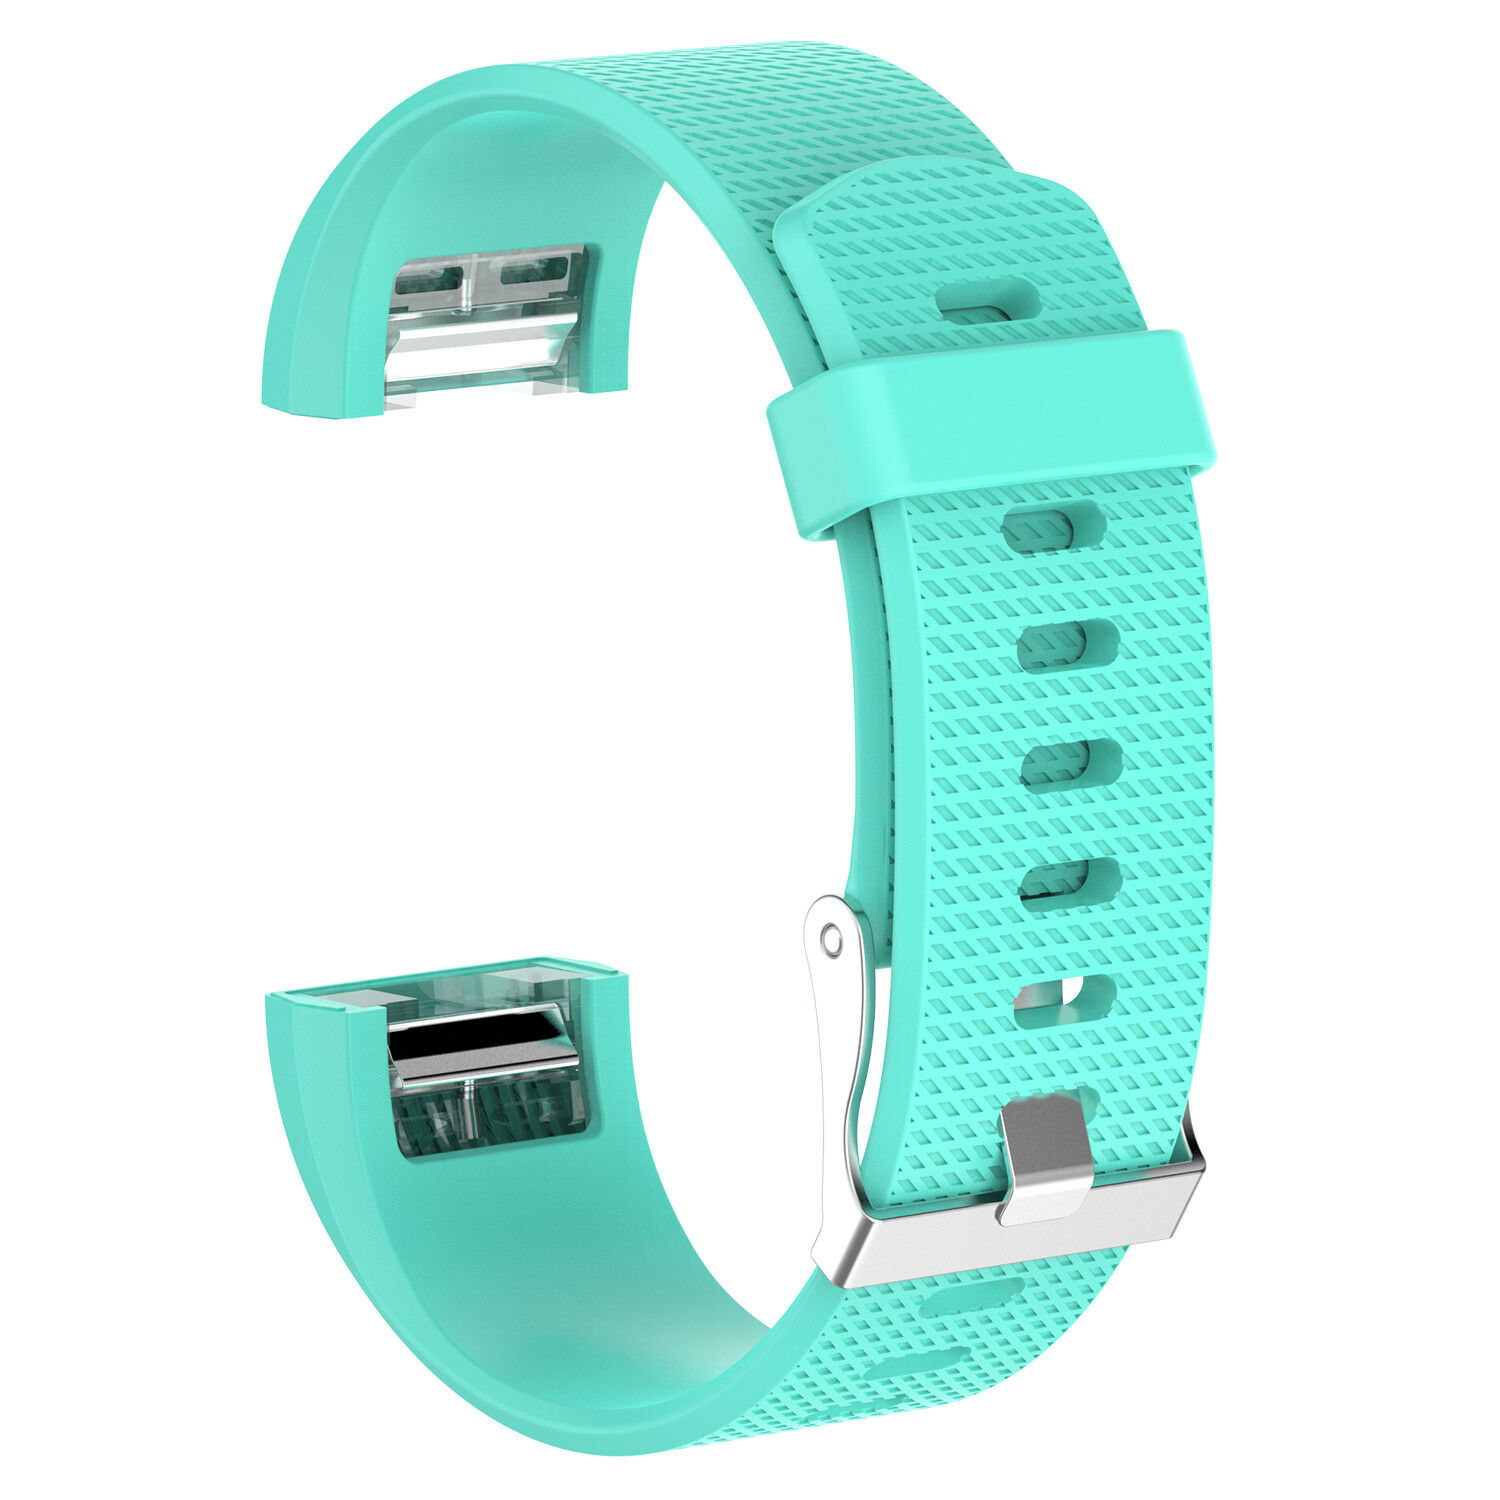 3 Pack Replacement  Band for Fitbit Charge 2 Small Bracelet Watch Rate Fitness